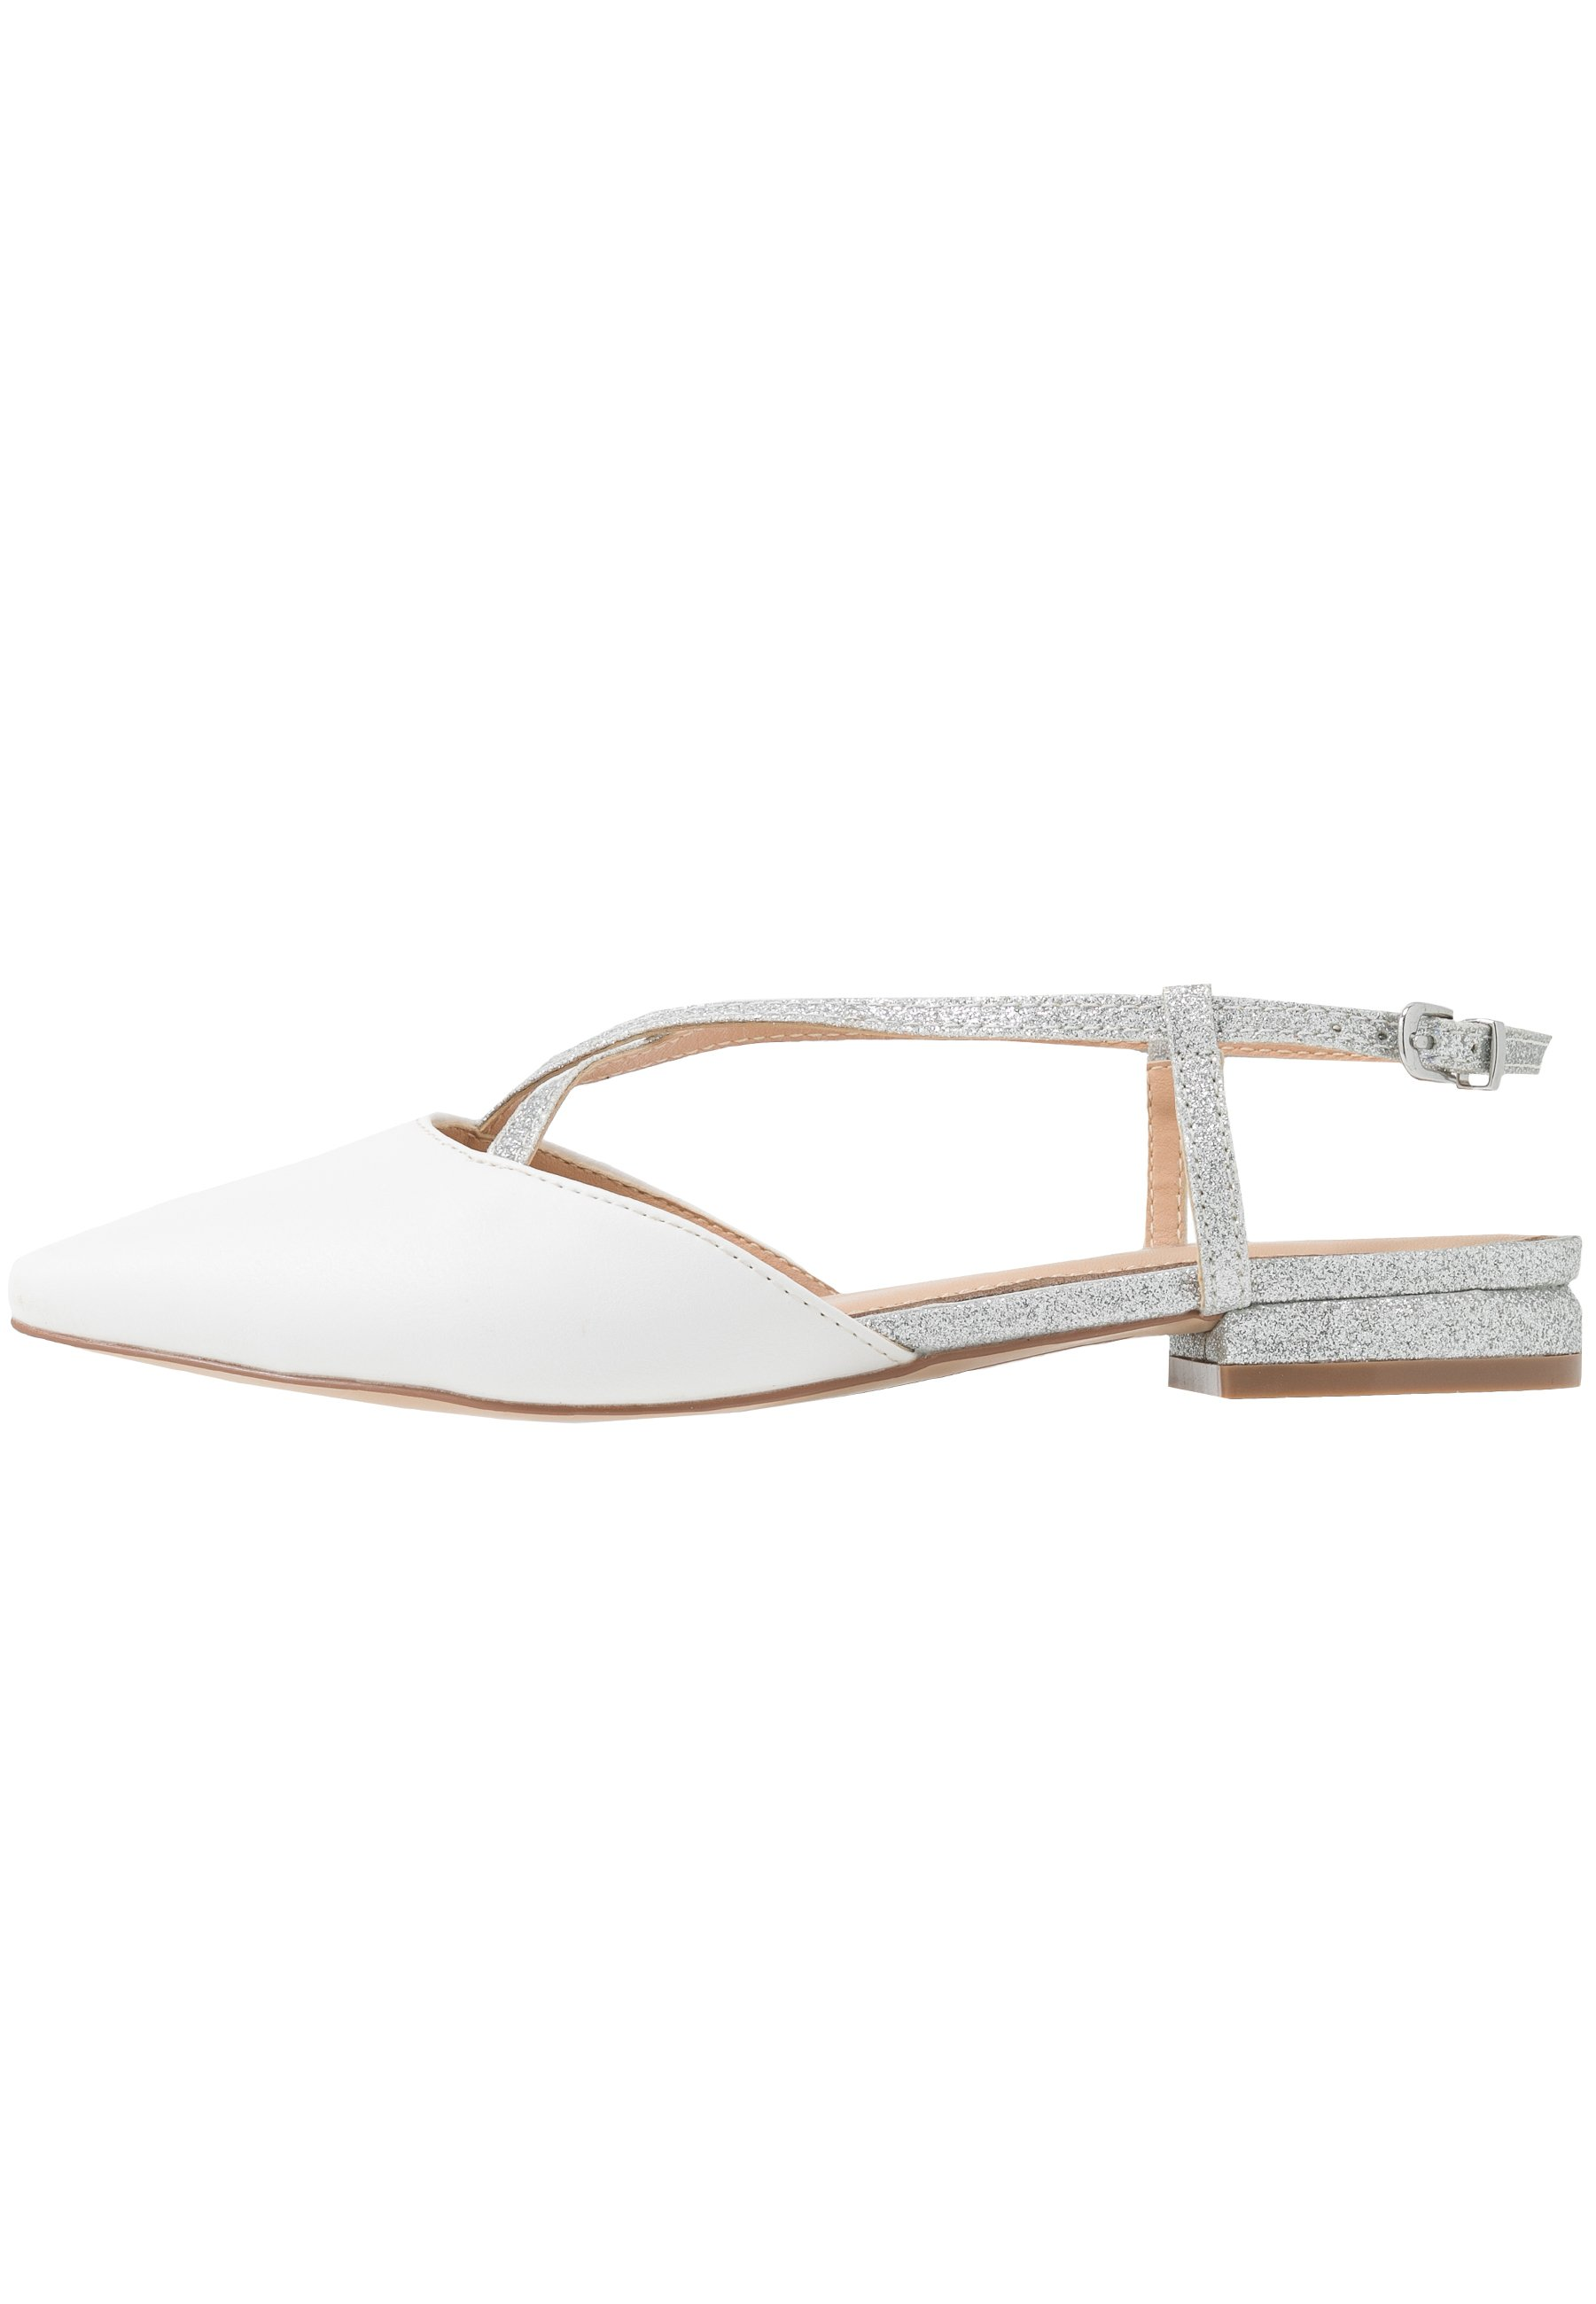 Lulipa London Leya - Sandals White